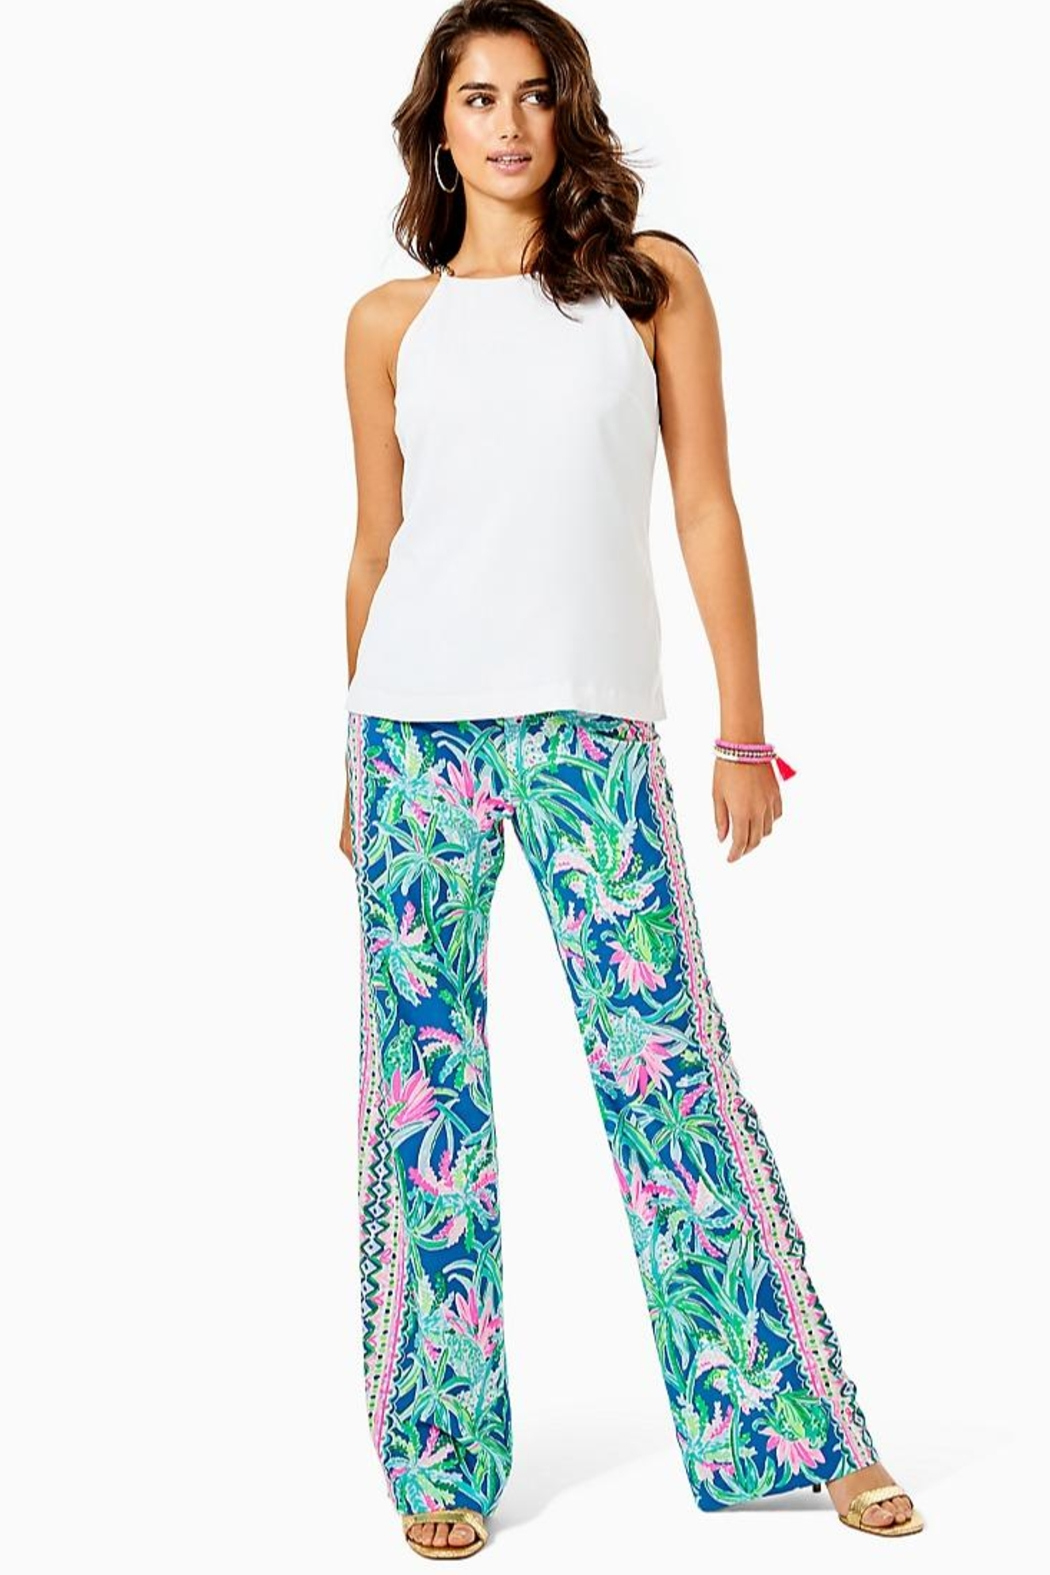 Lilly Pulitzer Bal Habour Palazzo-Pant - Main Image